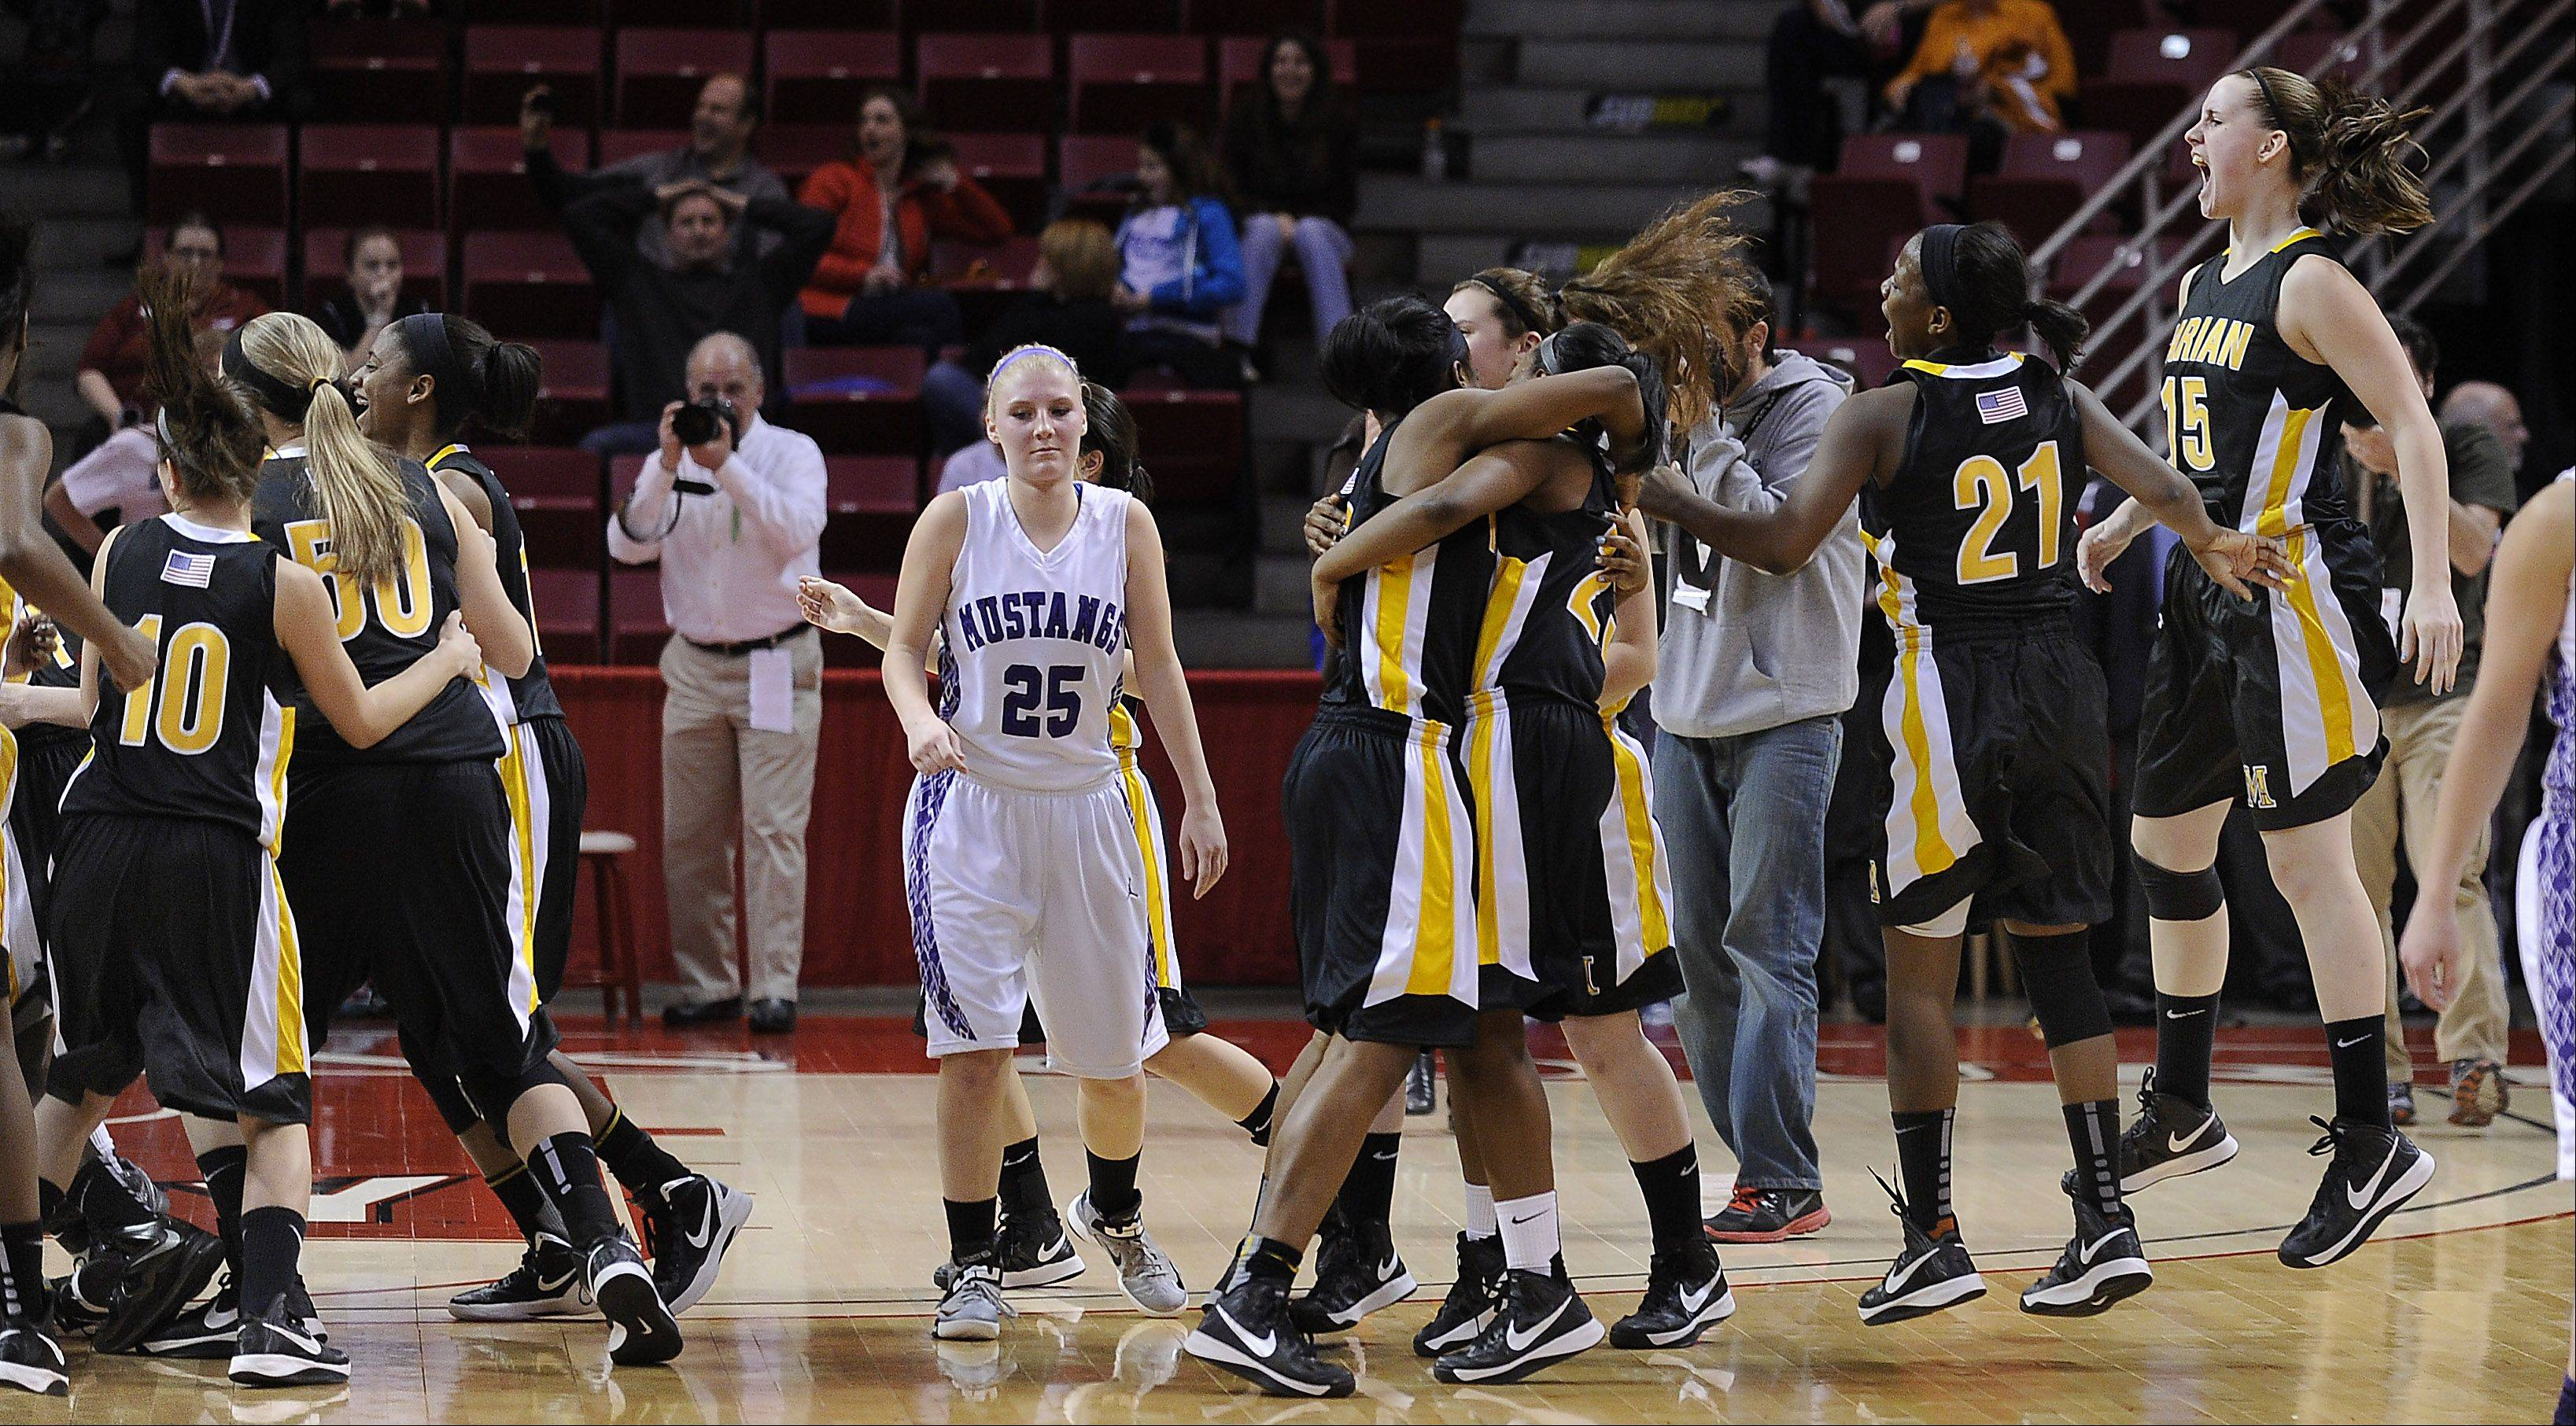 Rolling Meadows Allie Kemph walks off the court stunned as Marian celebrates their buzzer beater victory in the Class 4A 2013 girls basketball championship game in Normal on Saturday.